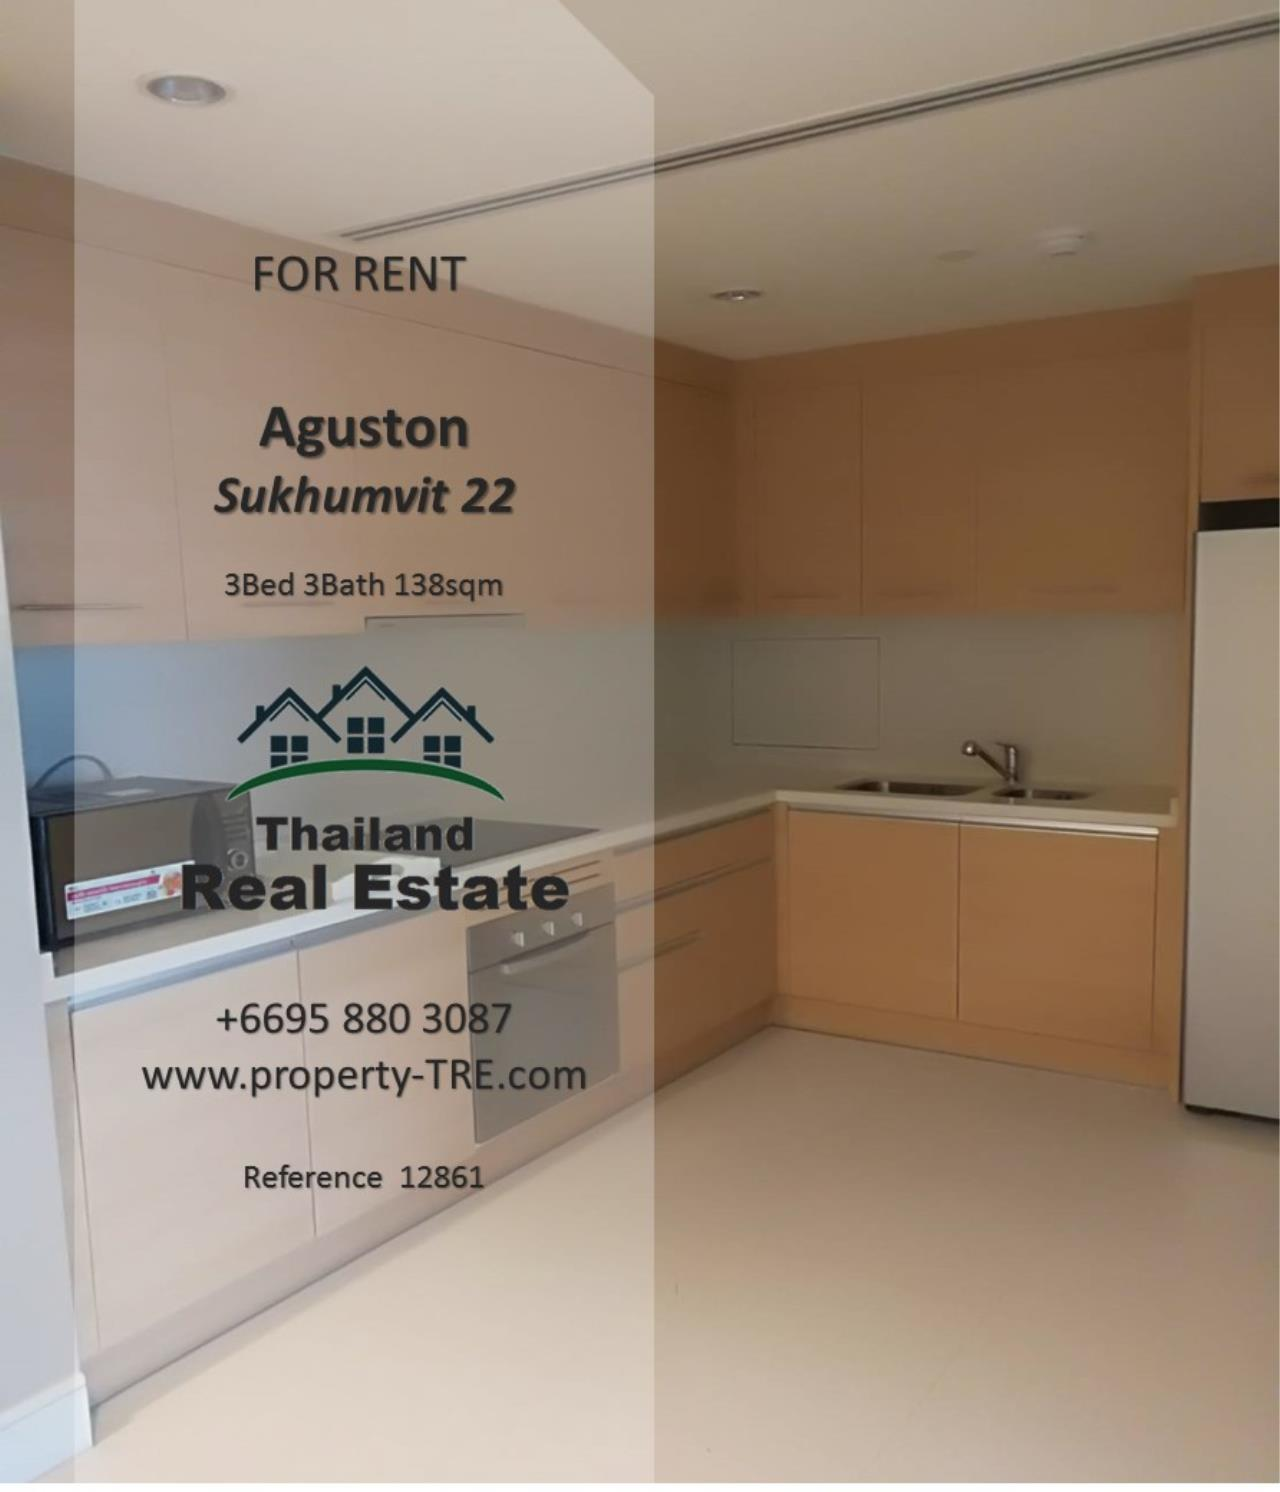 Thailand Real Estate Agency's 3 Bedroom Condo at Aguston Sukhumvit 22 near BTS Phrom Phong(12681) 2